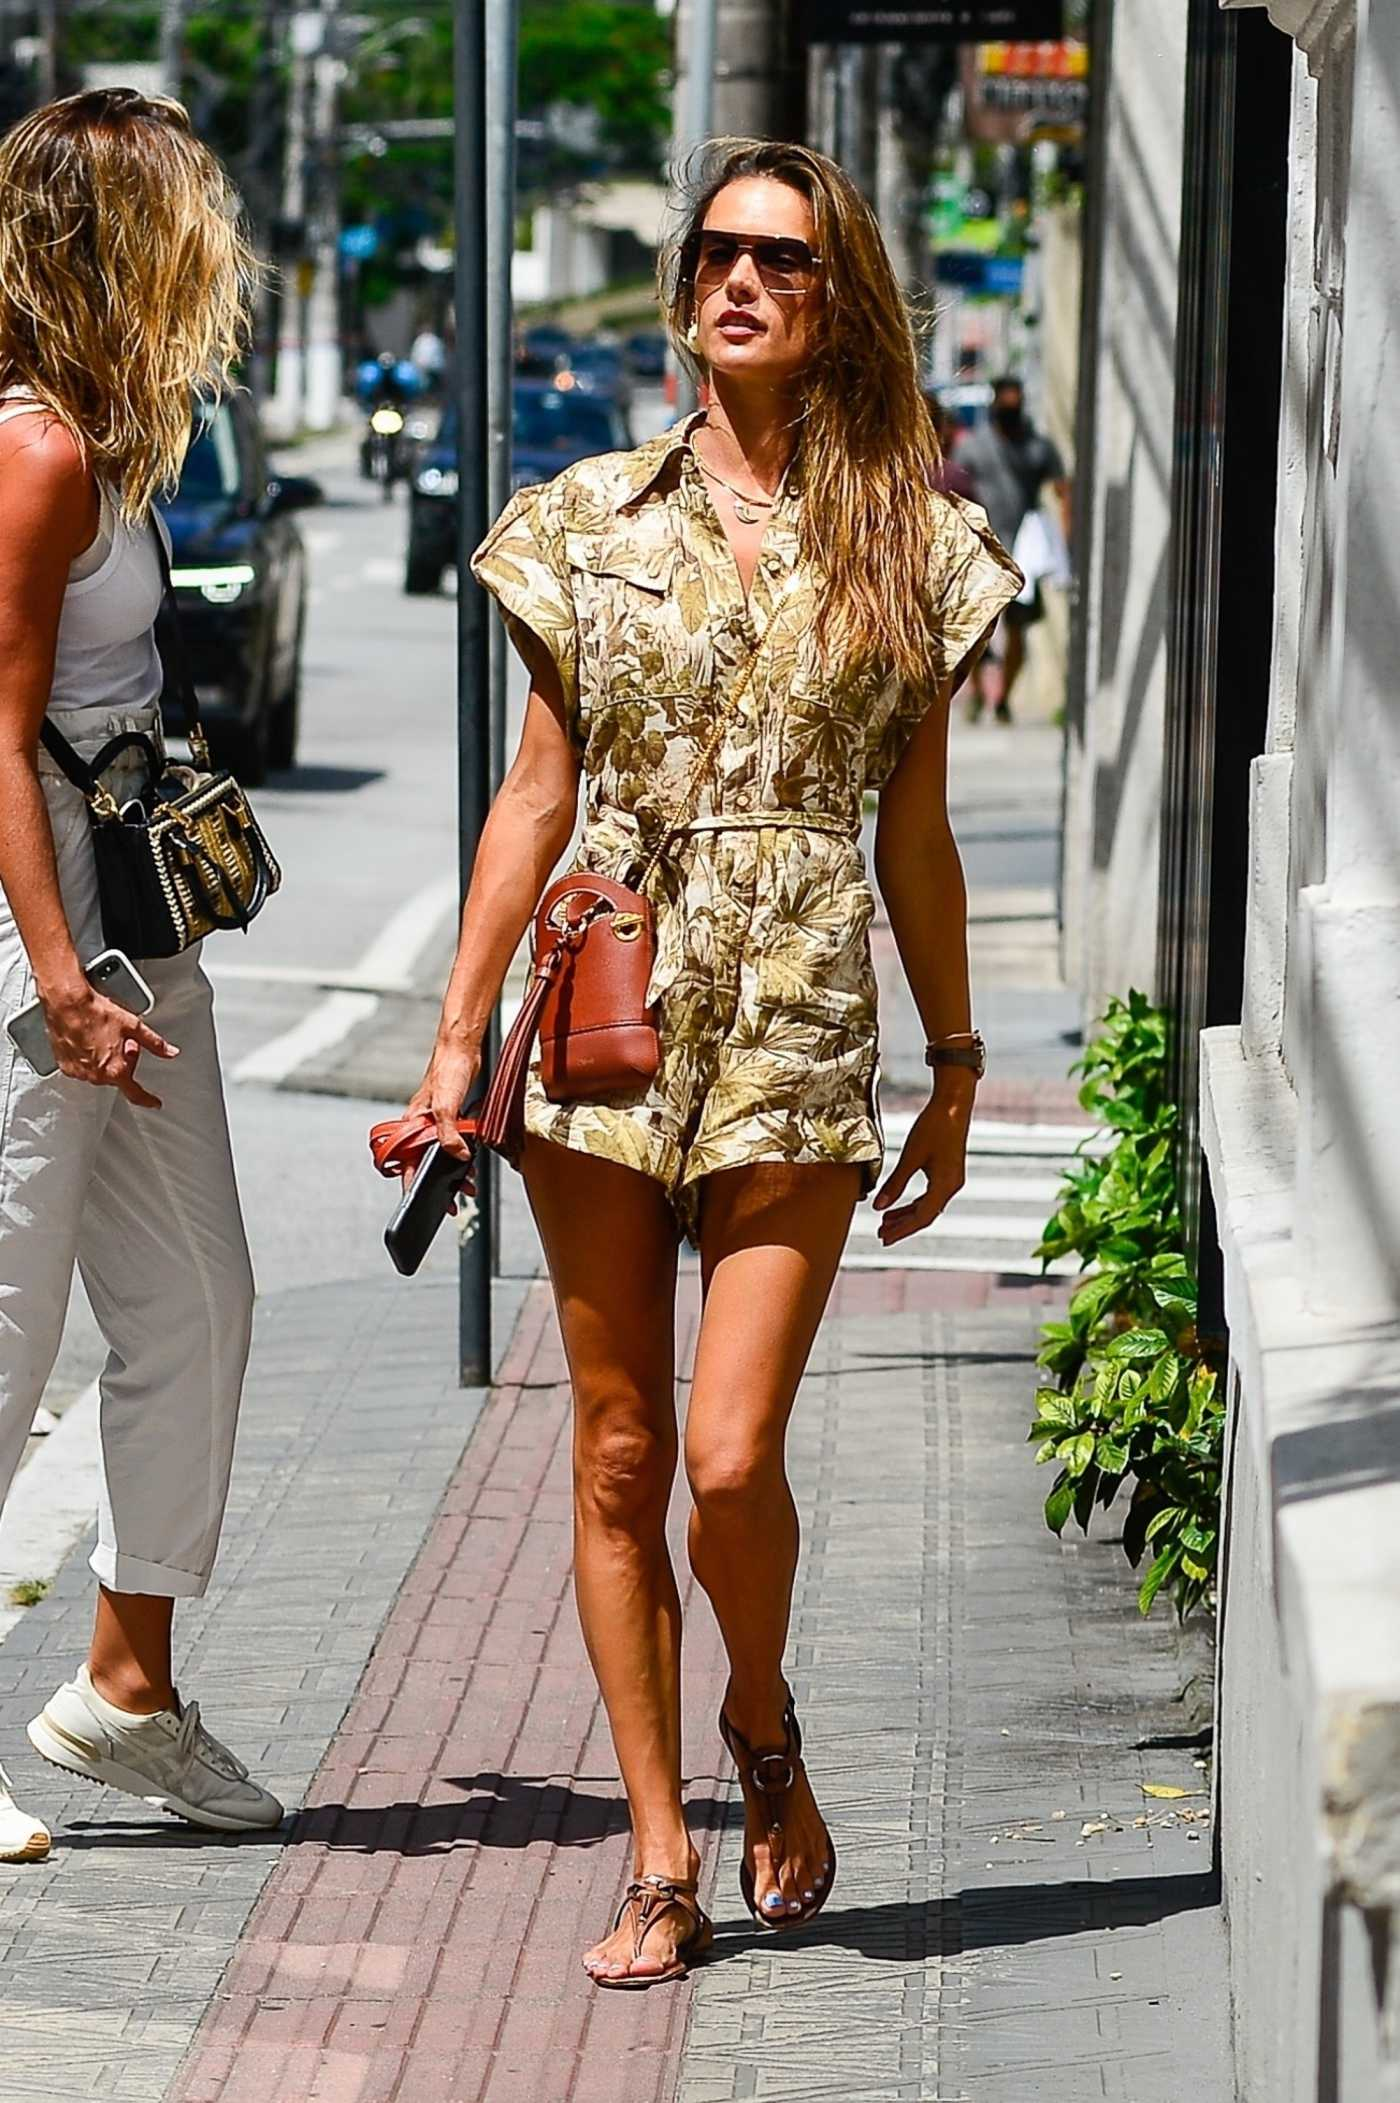 Alessandra Ambrosio in a Camo Floral Print Shorts Jumpsuit Was Seen Out in Florianopolis 01/13/2021